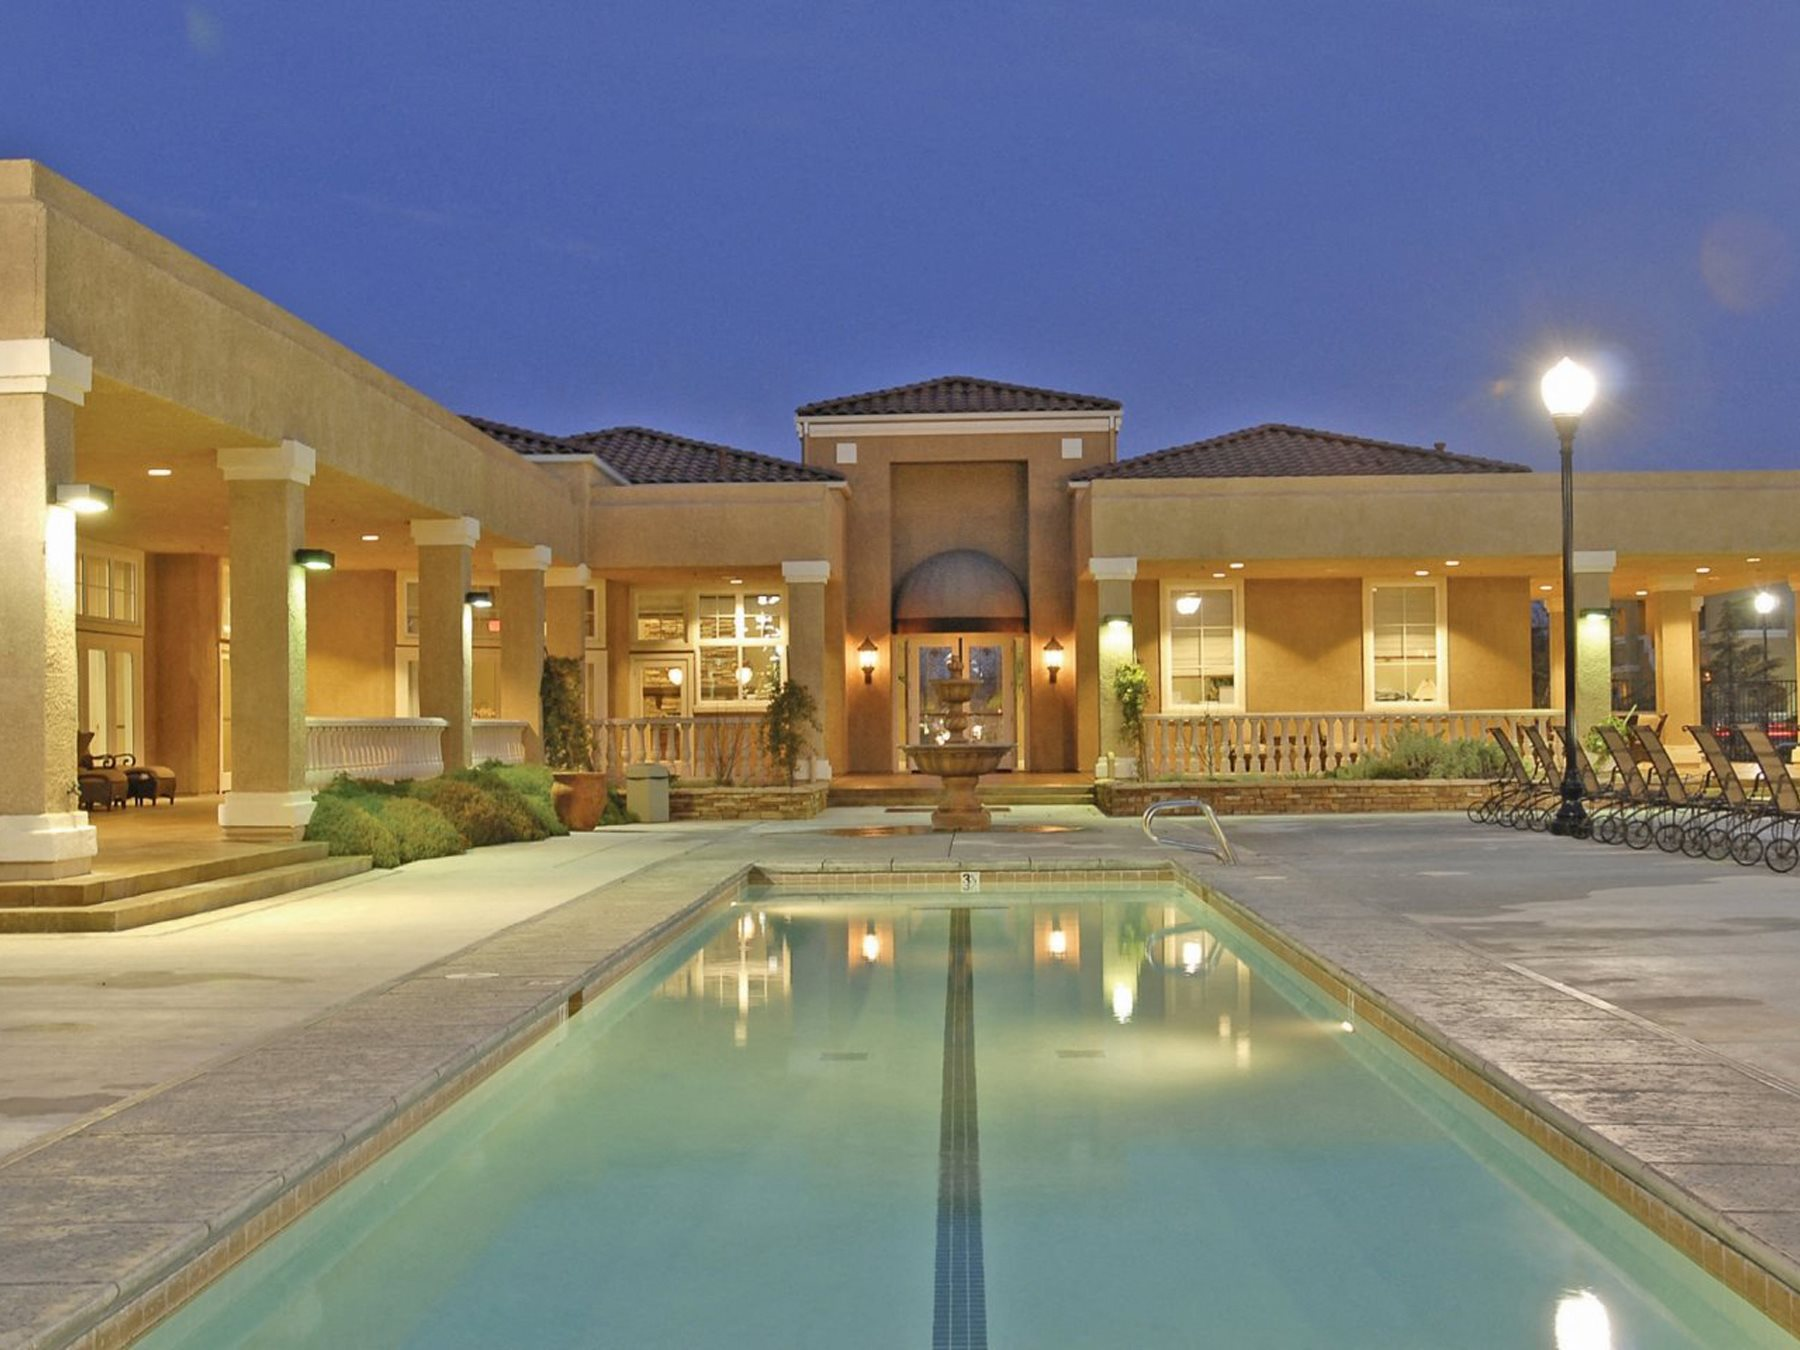 evening pool by clubhouse Elk Grove 95758 Apts for rent l Siena Villas